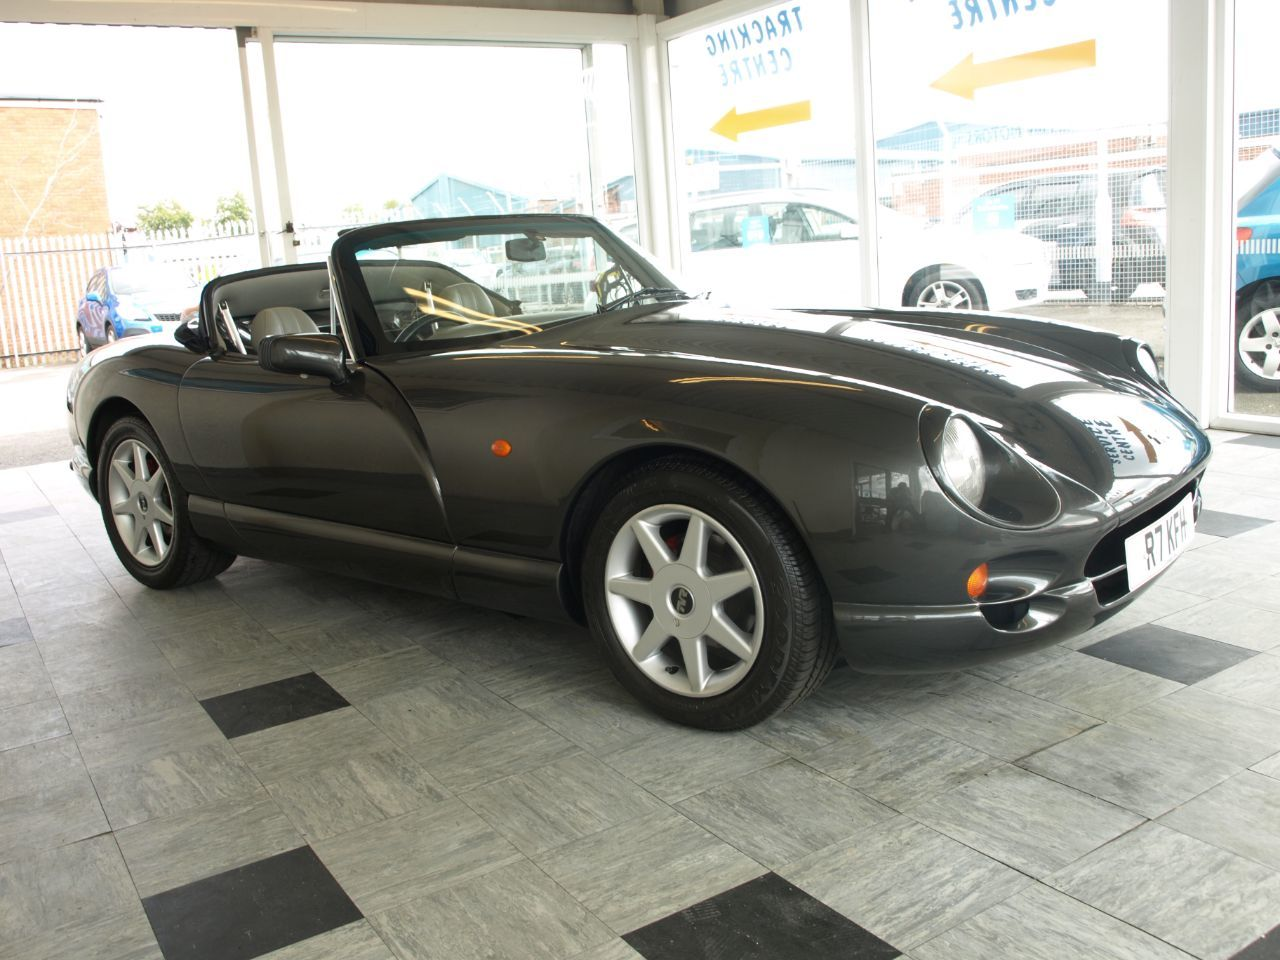 Tvr Chimaera 4.5 450 Convertible Petrol Grey